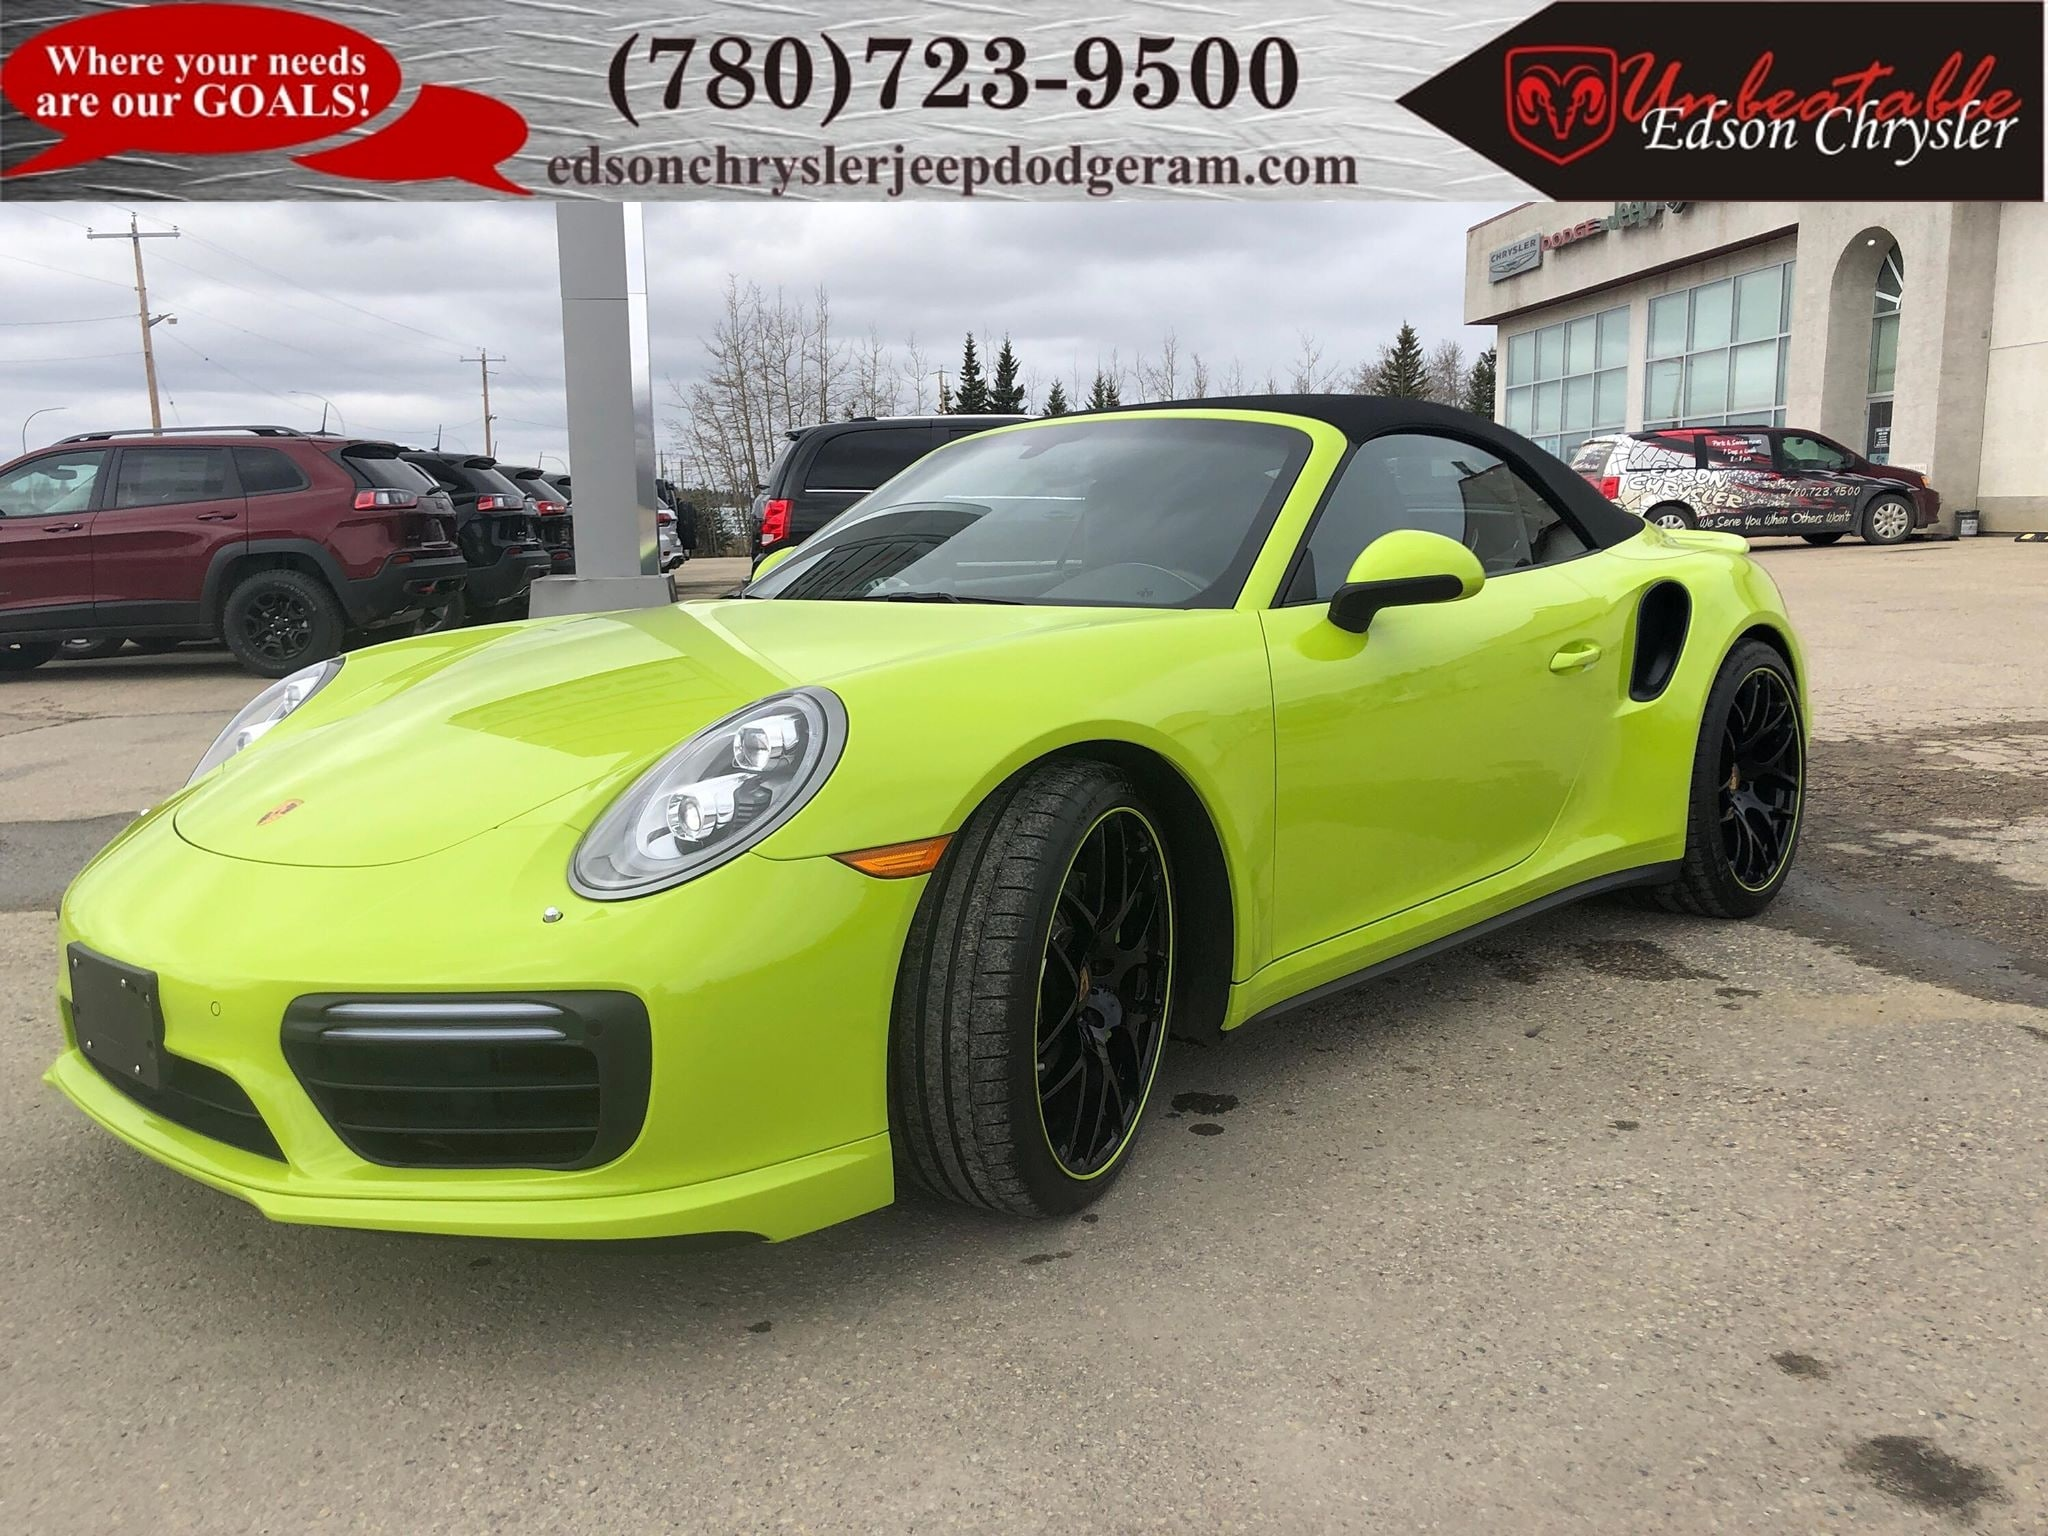 2017 Porsche 911 Turbo - Paint To Sample Acid Green Convertible